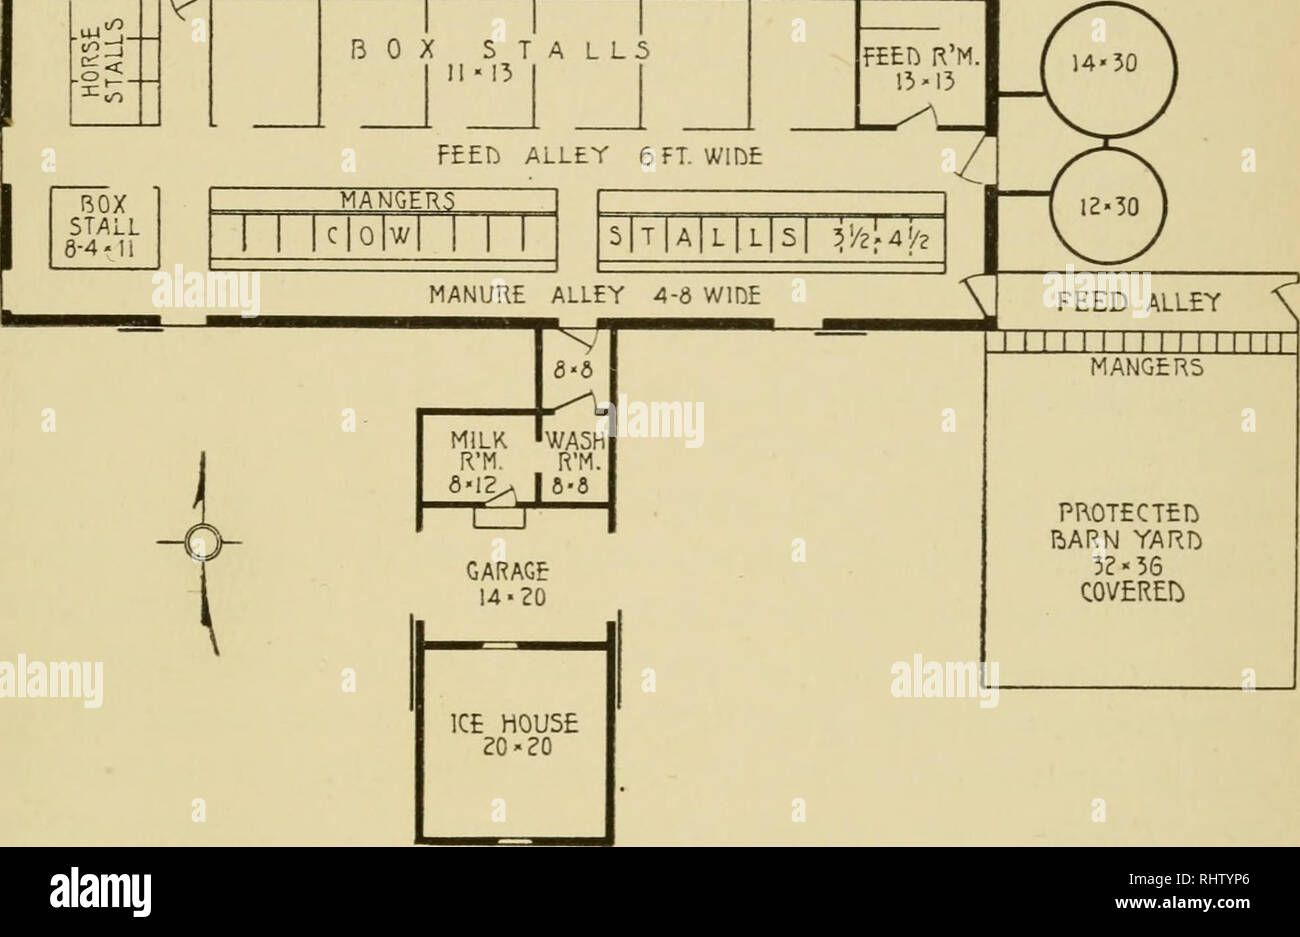 Better Dairy Farming The Breeding Feeding Handling And Care Of Dairy Cattle Cows Feeds Dairying Box Stalls Floor Plan For Handy Dairy Barn And Then Plan Very Very Carefully The Modifications